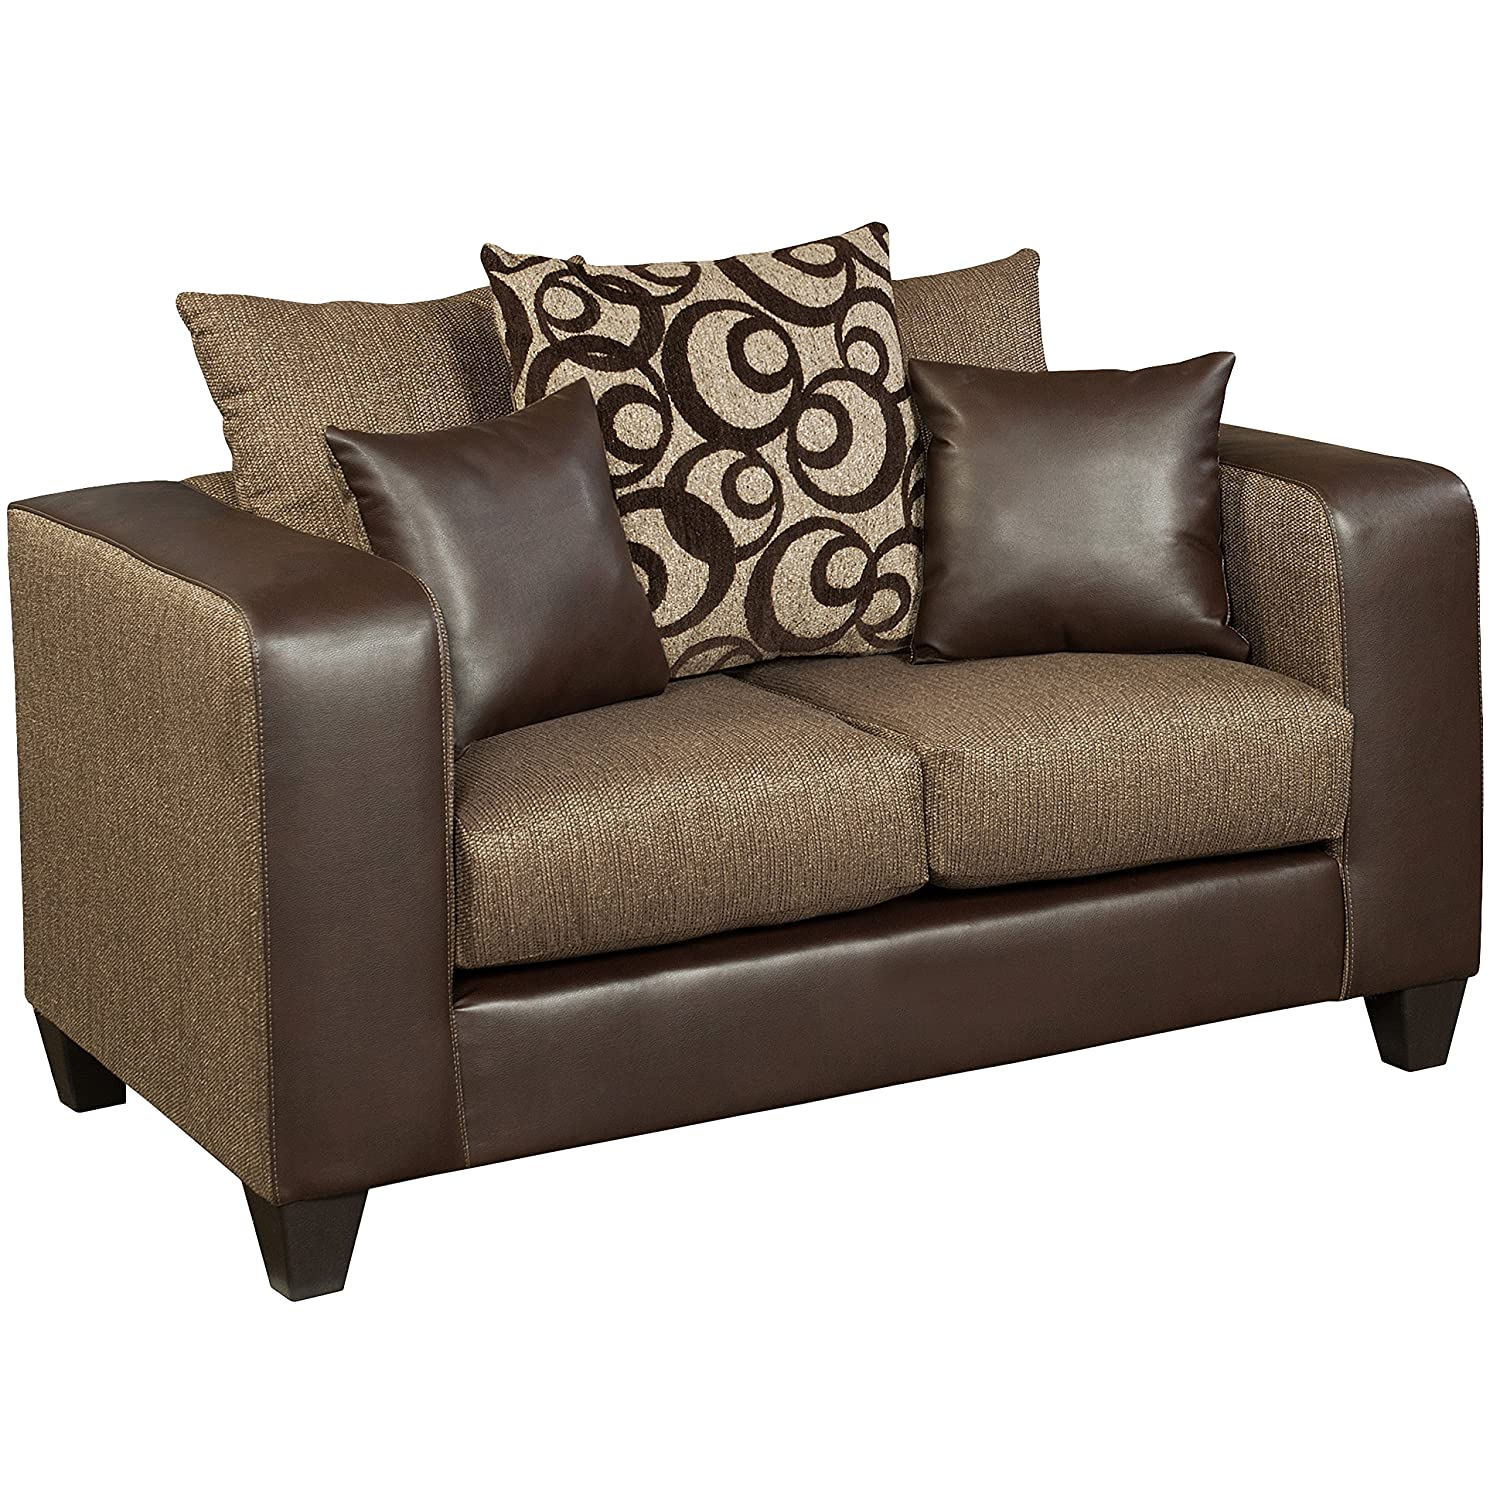 Flash Furniture Riverstone Object Espresso Chenille Loveseat - Brown